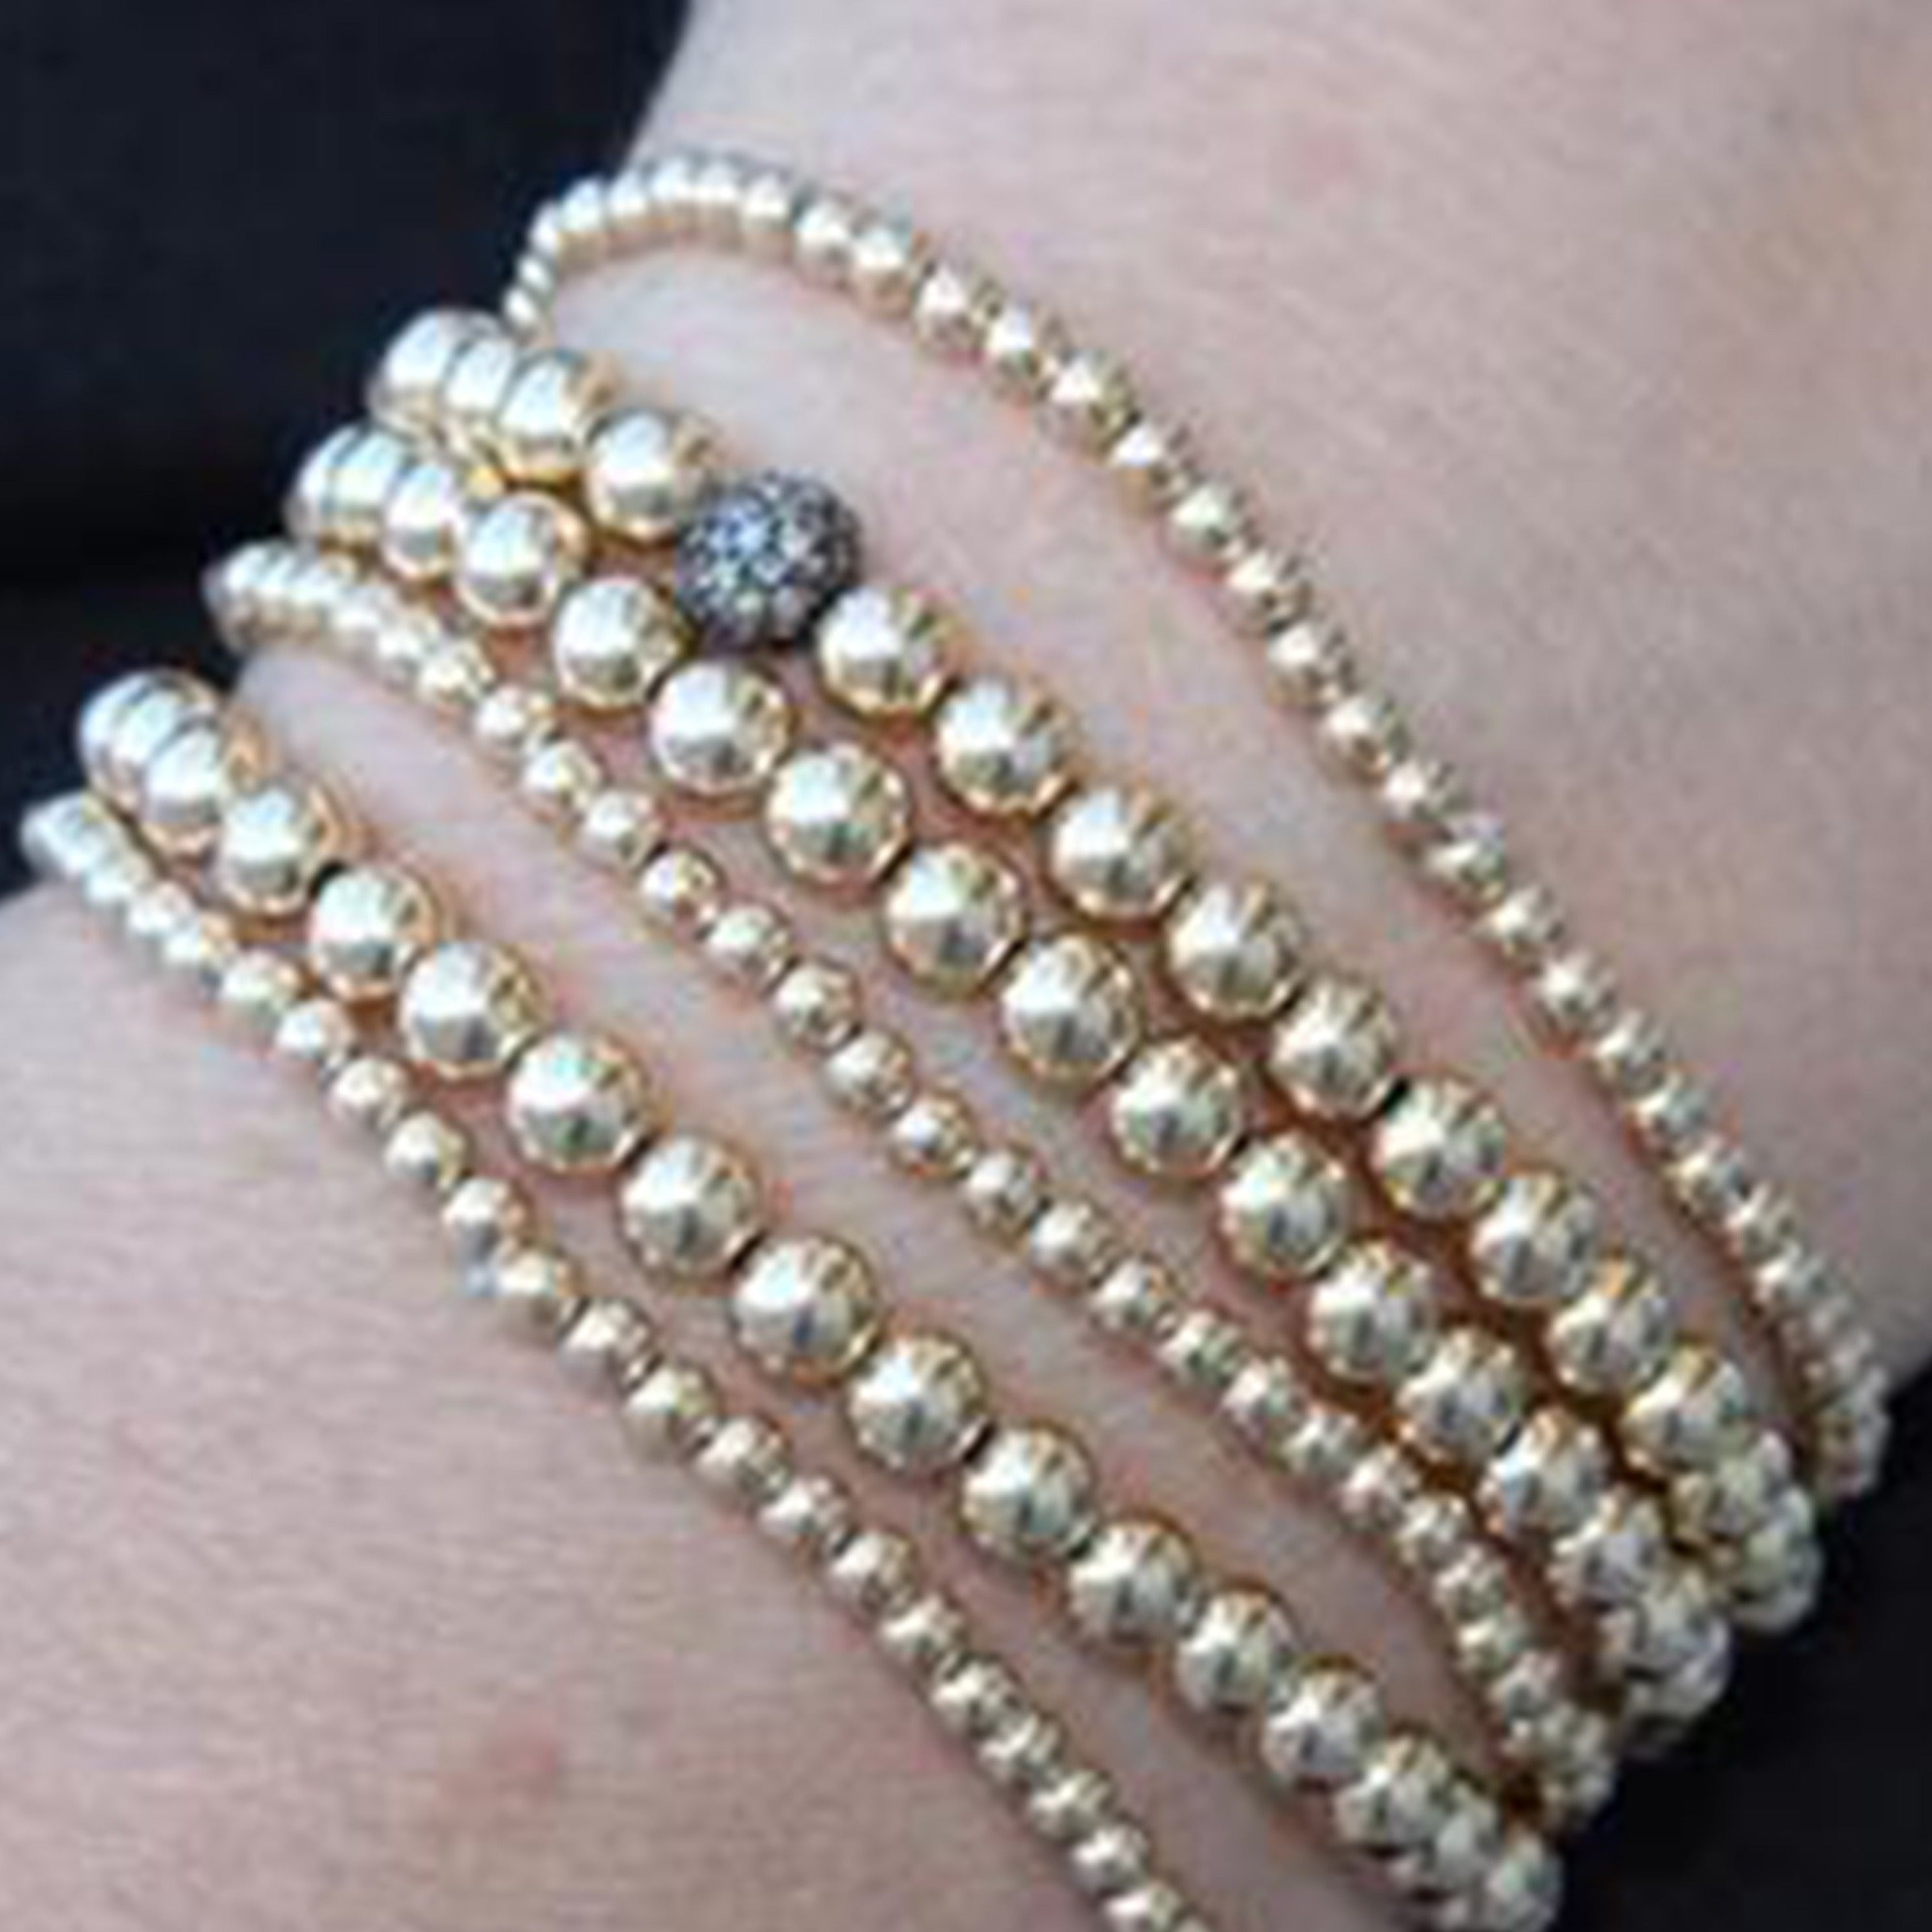 Gold Beaded Bracelets | Assorted Sizes Starting at $26 - Alef Bet Jewelry by Paula